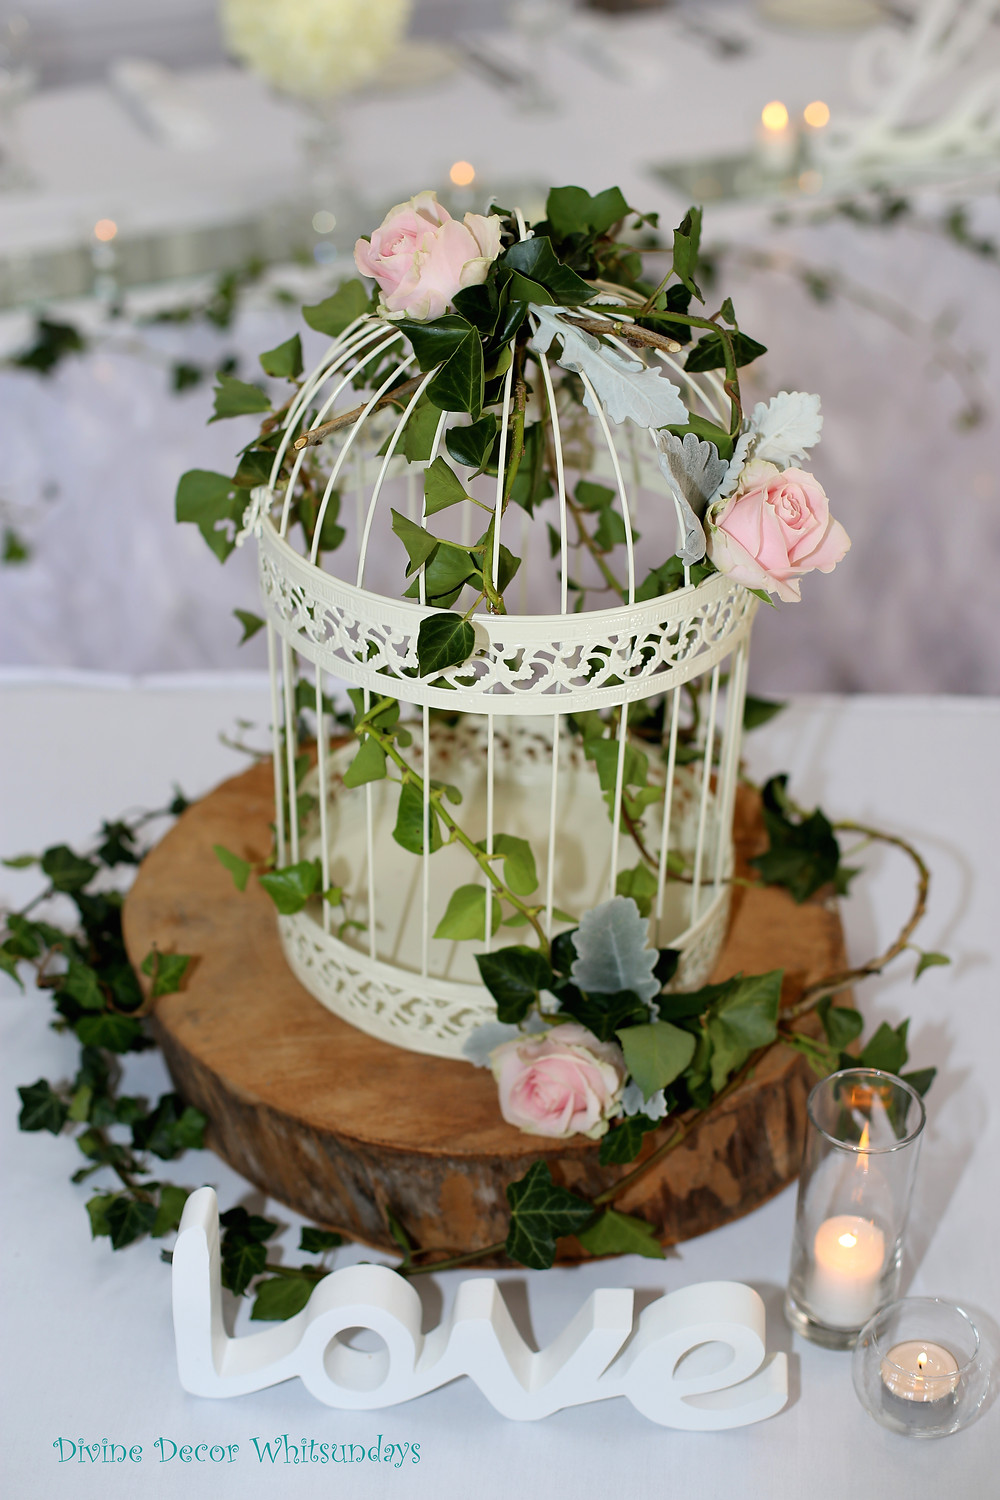 Rustic Style Bird Cage Wishing Well